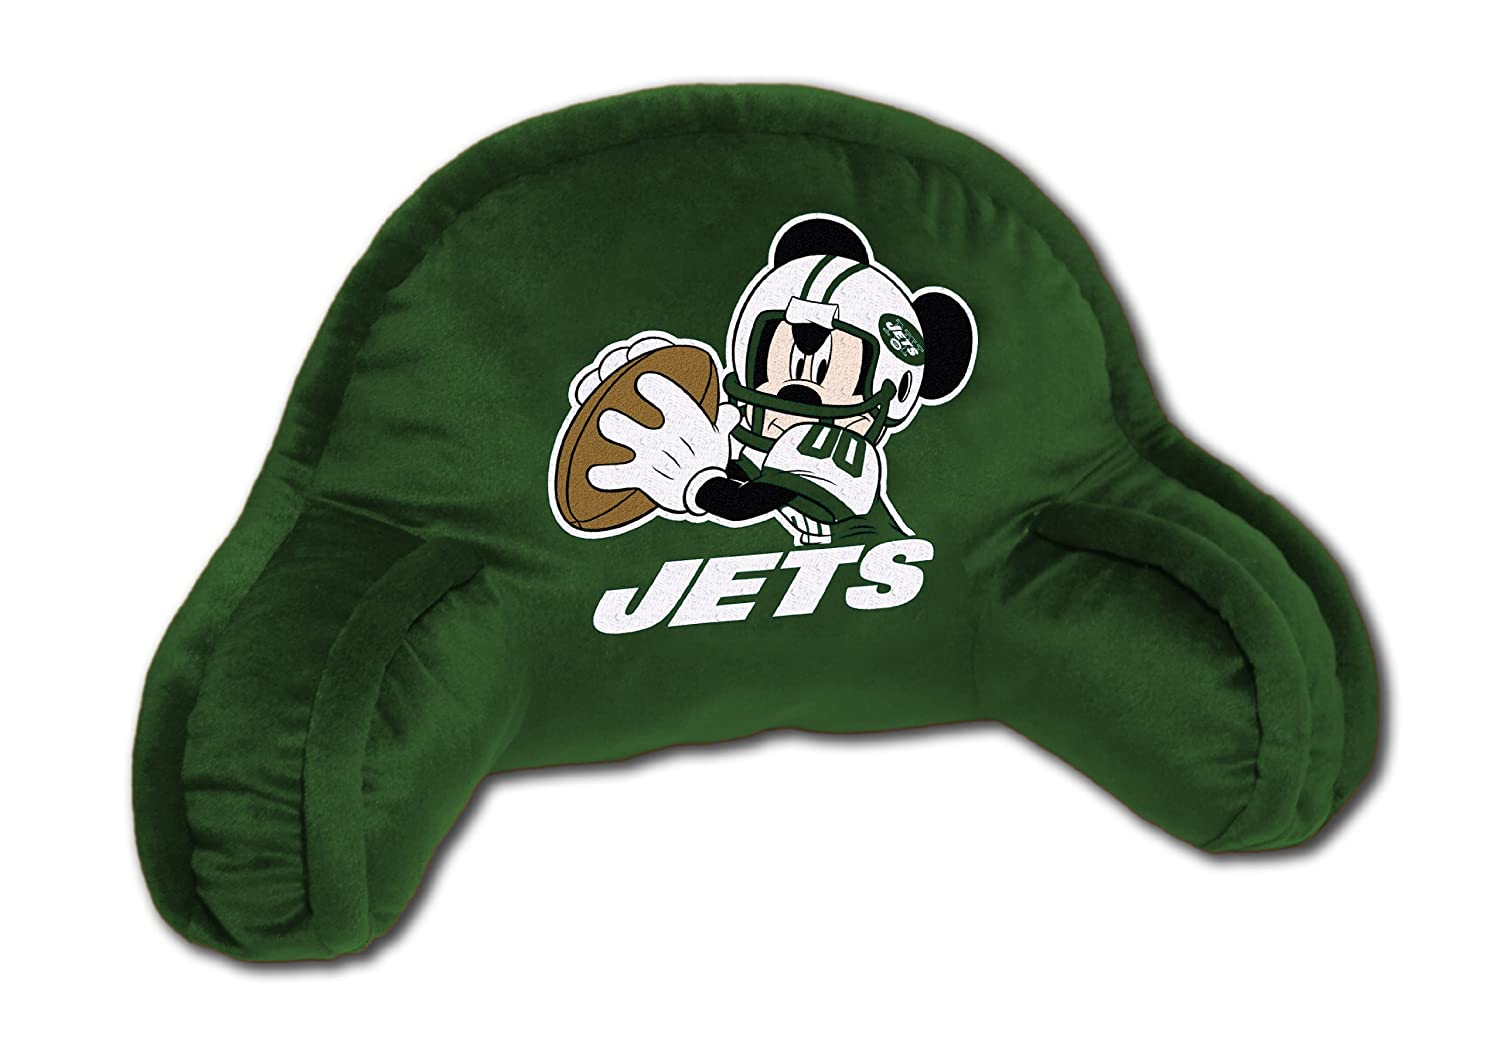 NFL New York Jets Mickey Mouse Plush 12-Inch-by-20-Inch Embroidered Bed Rest Pillow